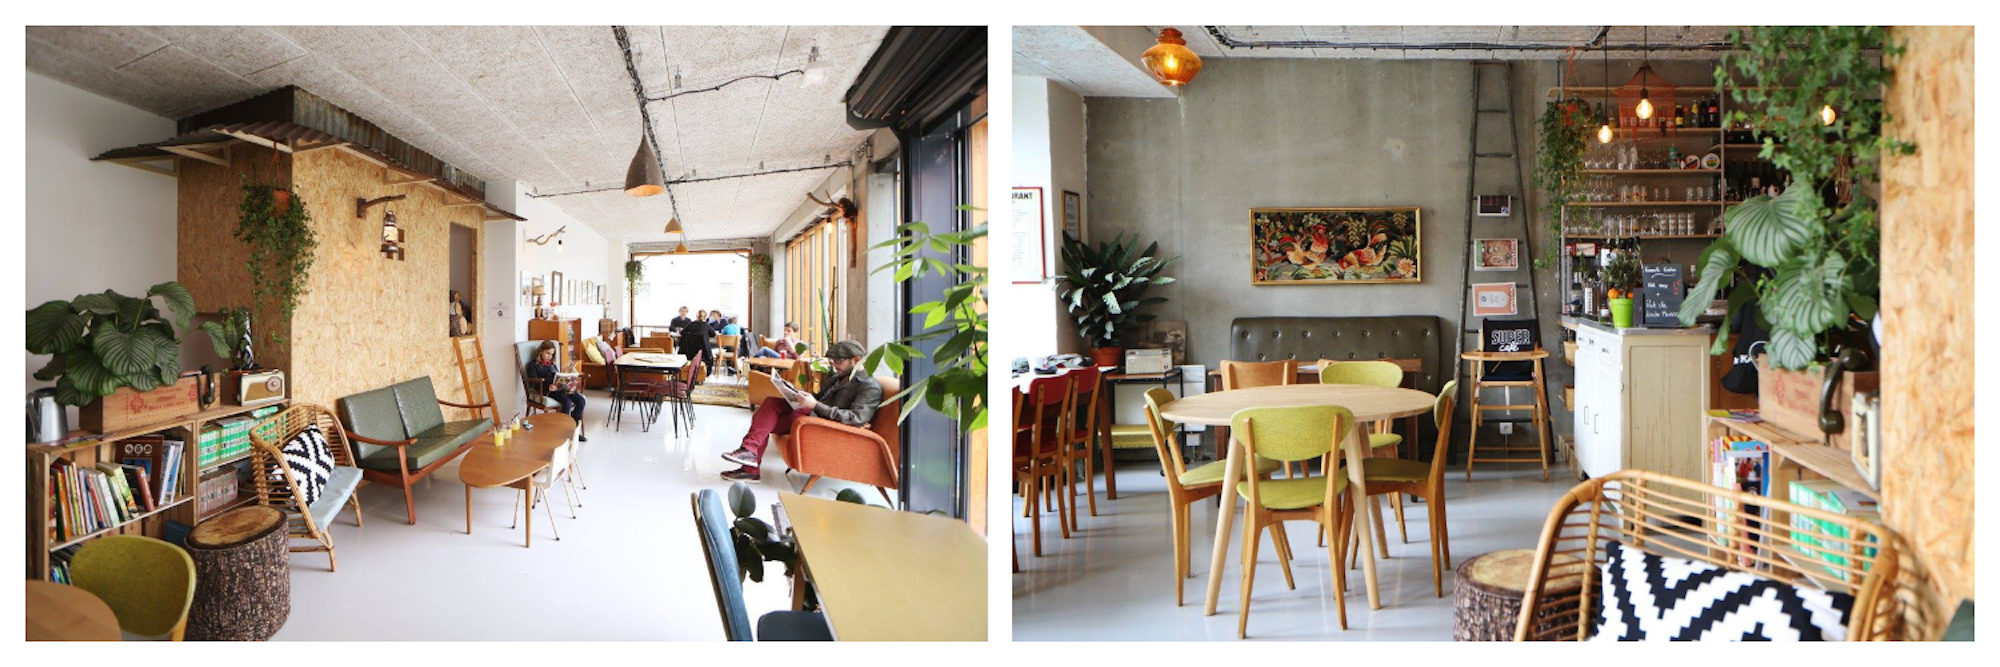 Inside Paris kid-friendly coffee shop, Super Café in the 20th arrondissement (left) and its Scandinavian-inspired decor (right).